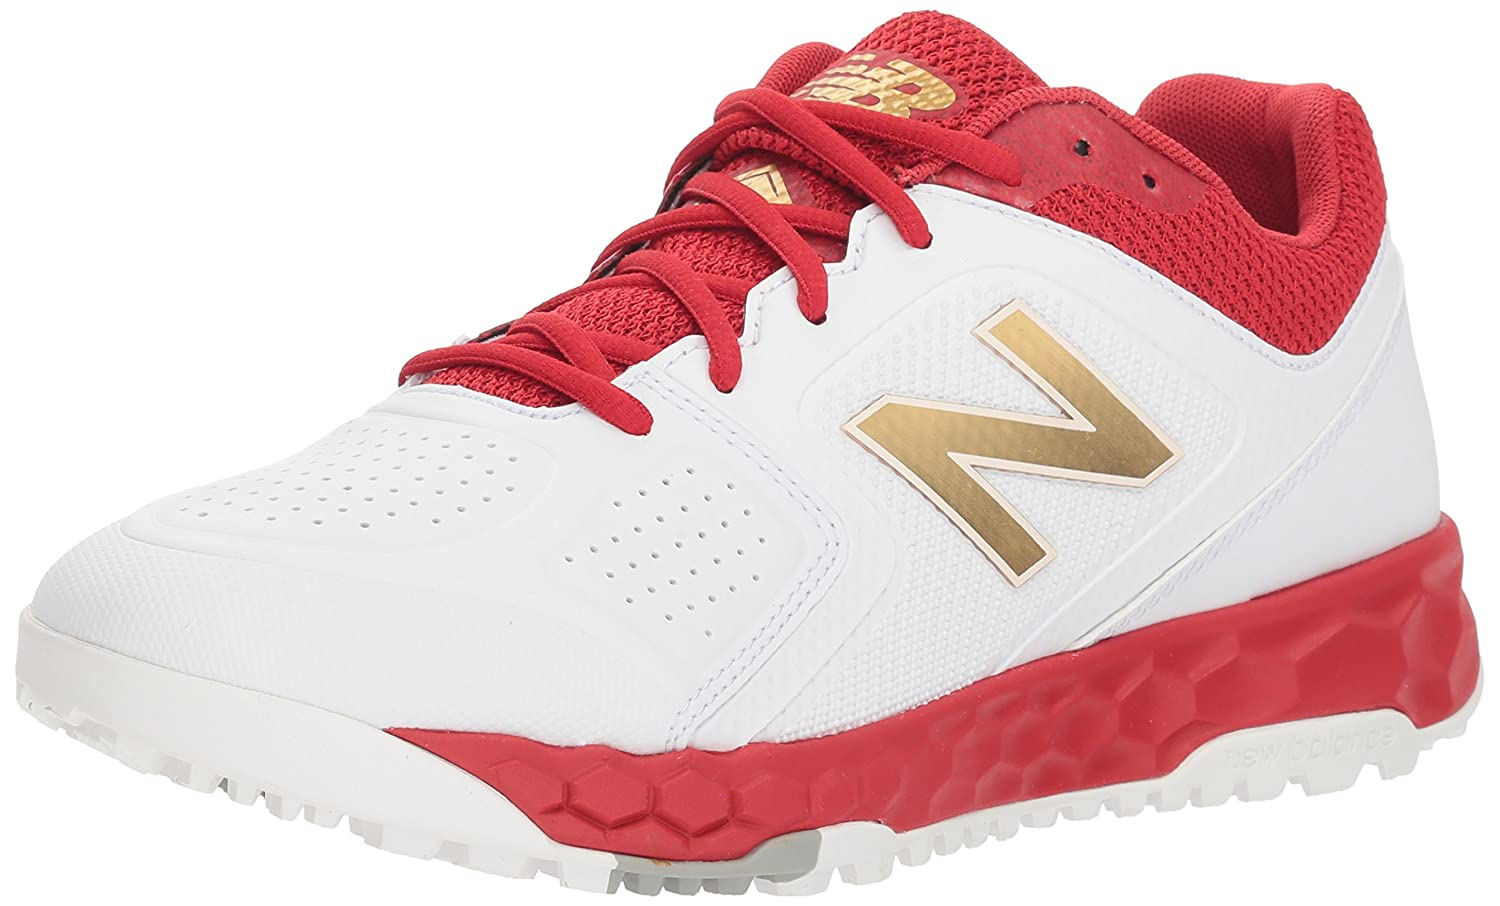 New Balance Women's Velo V1 Turf Softball Shoe B075R6VGW4 6 D US|Red/White